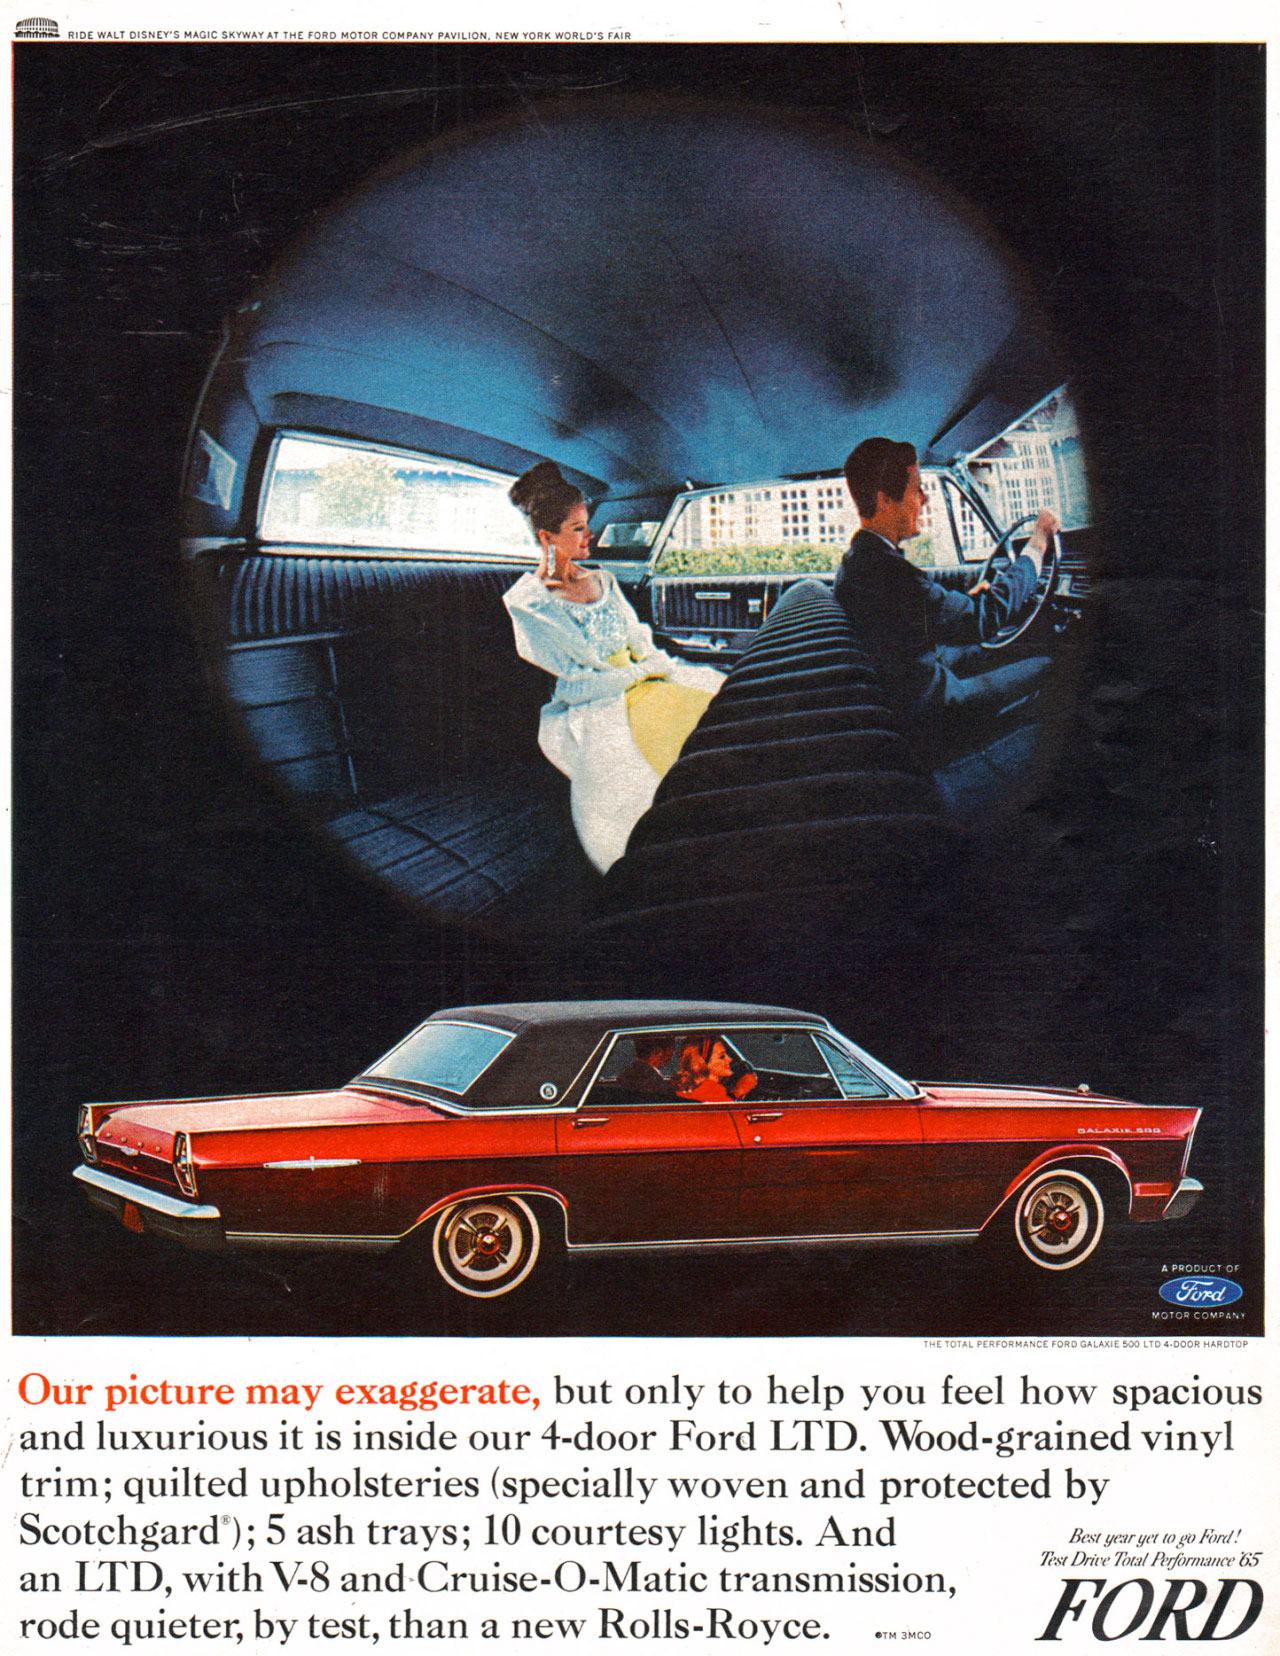 Our picture may exaggerate, but only to help you feel how spacious and luxurious it is inside our 4-door 1965 Ford Galaxie 500 LTD. Wood-grained vinyl trim; quilted upholsteries (specially woven and protected by Scotchgard''); 5 ash trays; 10 courtesy lights. And yr:, yet to, NY.t/' Drue7b, 11mune an LTD, with V-8 and-Cruise-O-Matic transmission, rode quieter, by test, than a new Rolls-Royce. FORD